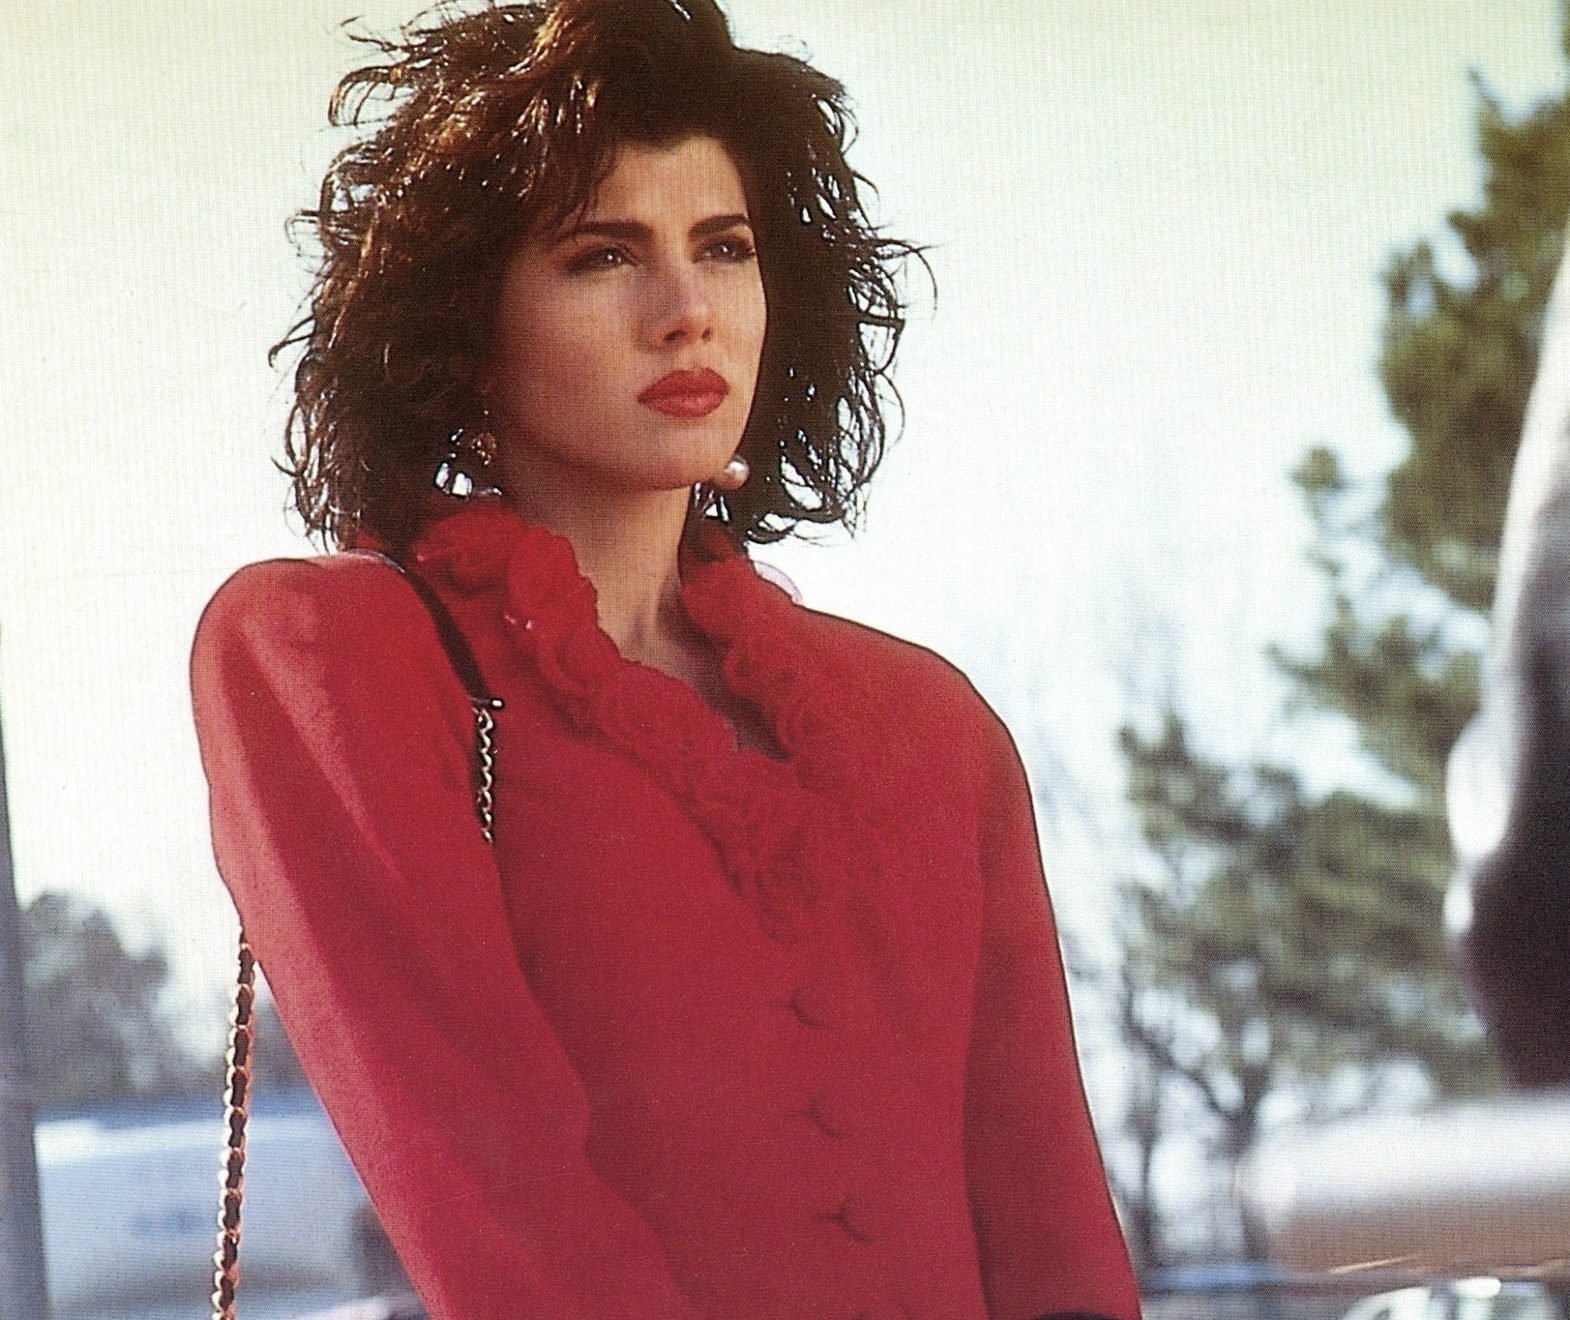 Marisa Tomei e1625046733231 20 Things You Never Knew About Marisa Tomei